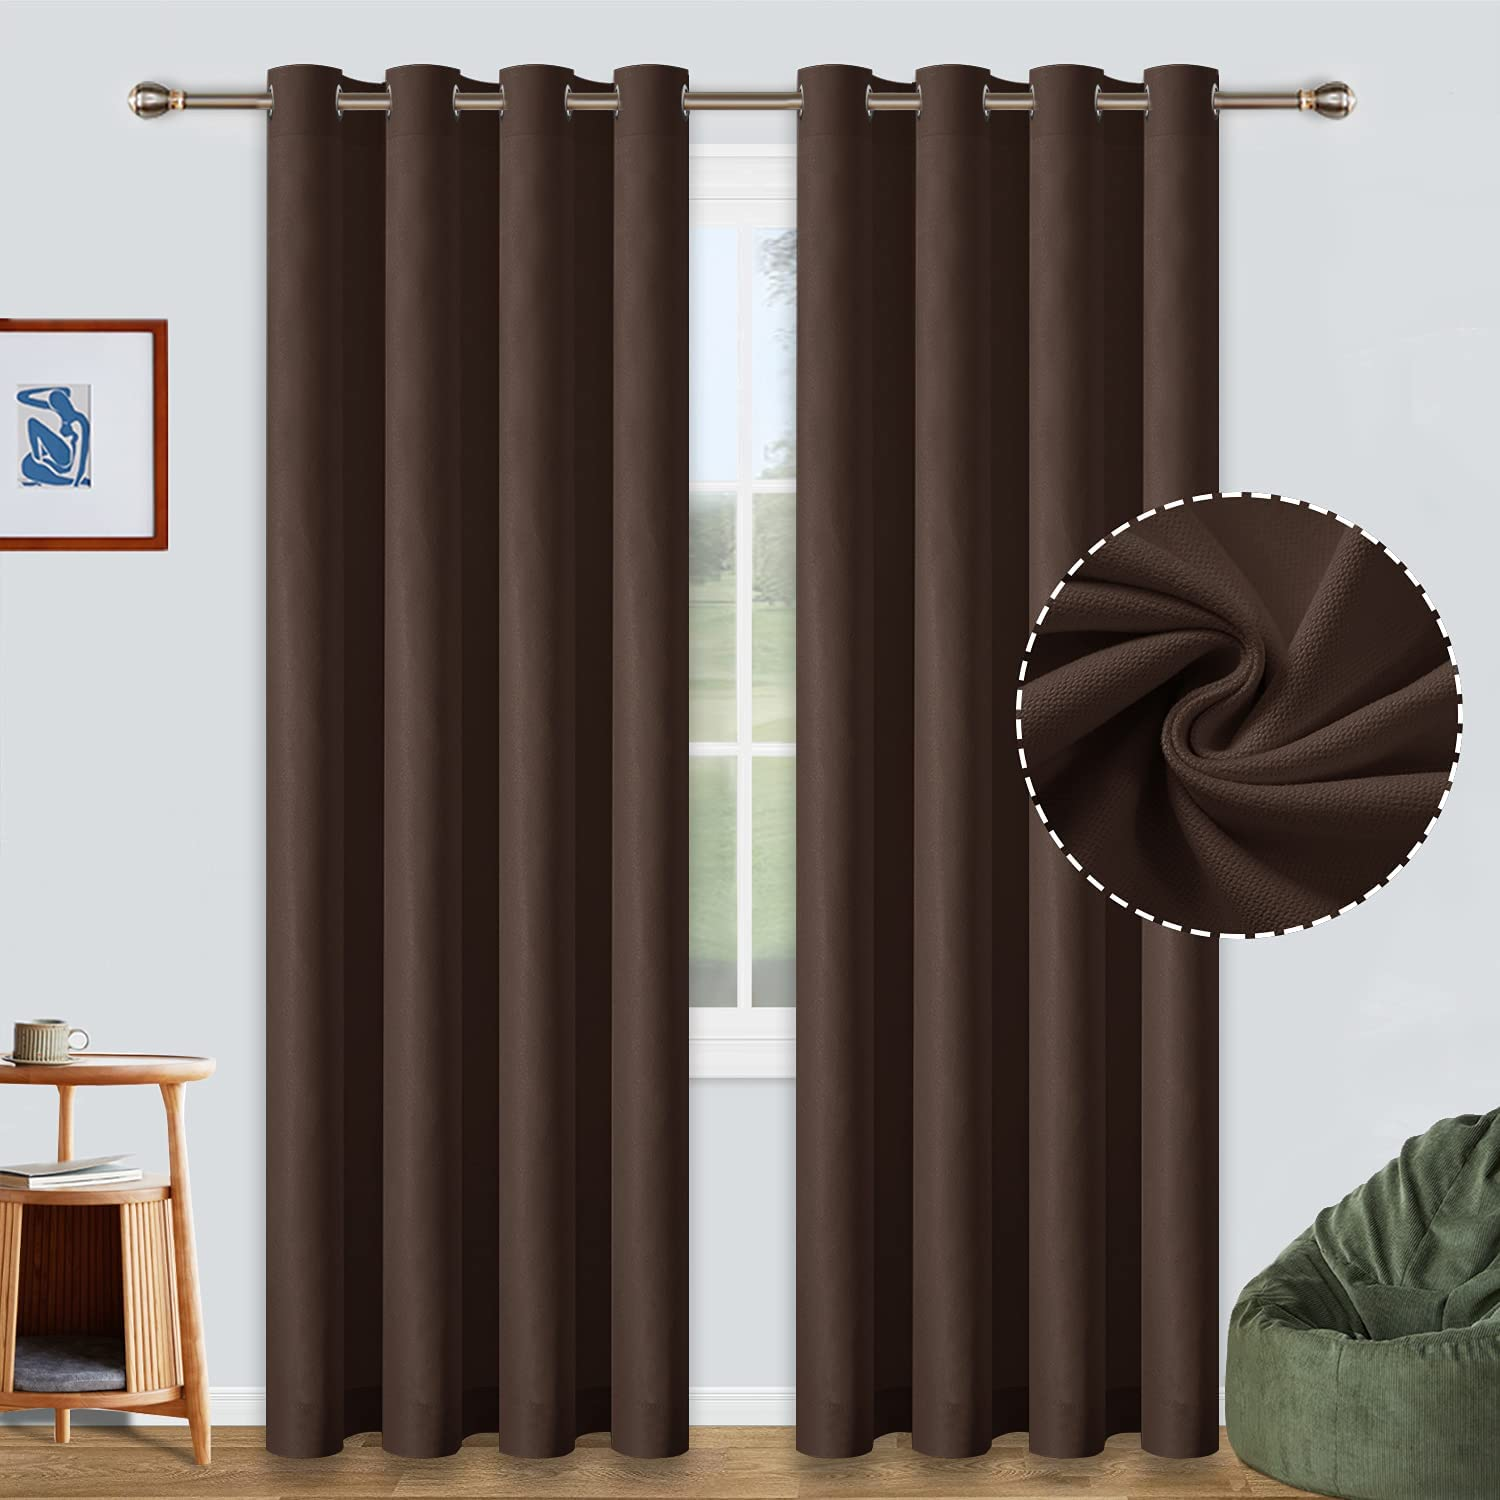 Ranking TOP17 ALLJOY Bedroom Blackout Curtains 84 Blocking Inch Light Surprise price Length